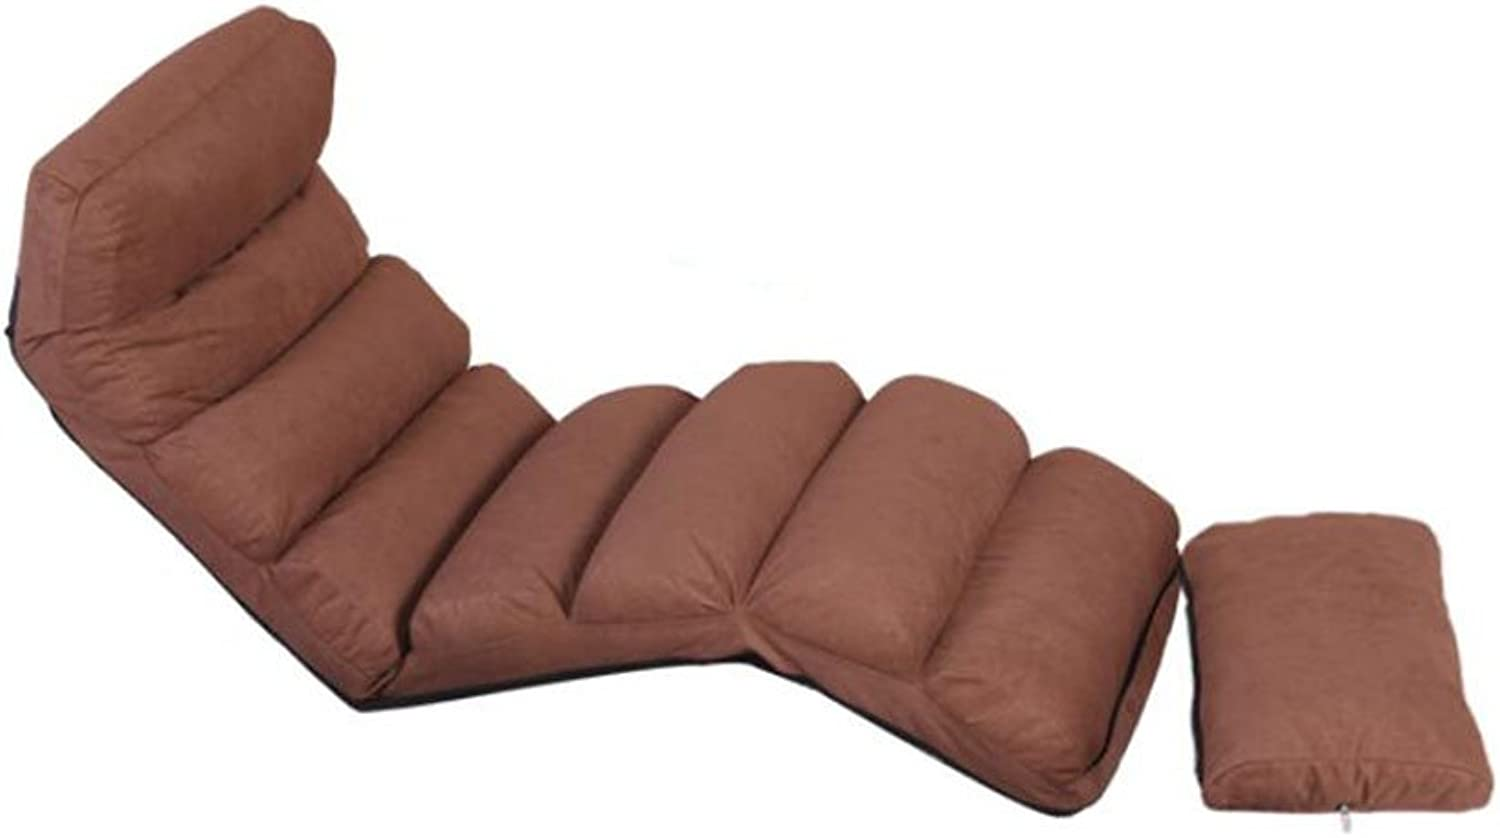 Lanrenshafa Lazy Couch Tatami Bed Chair Foldable Sofa Floor Small Sofa Recliner (color   Brown, Size   170  58cm)